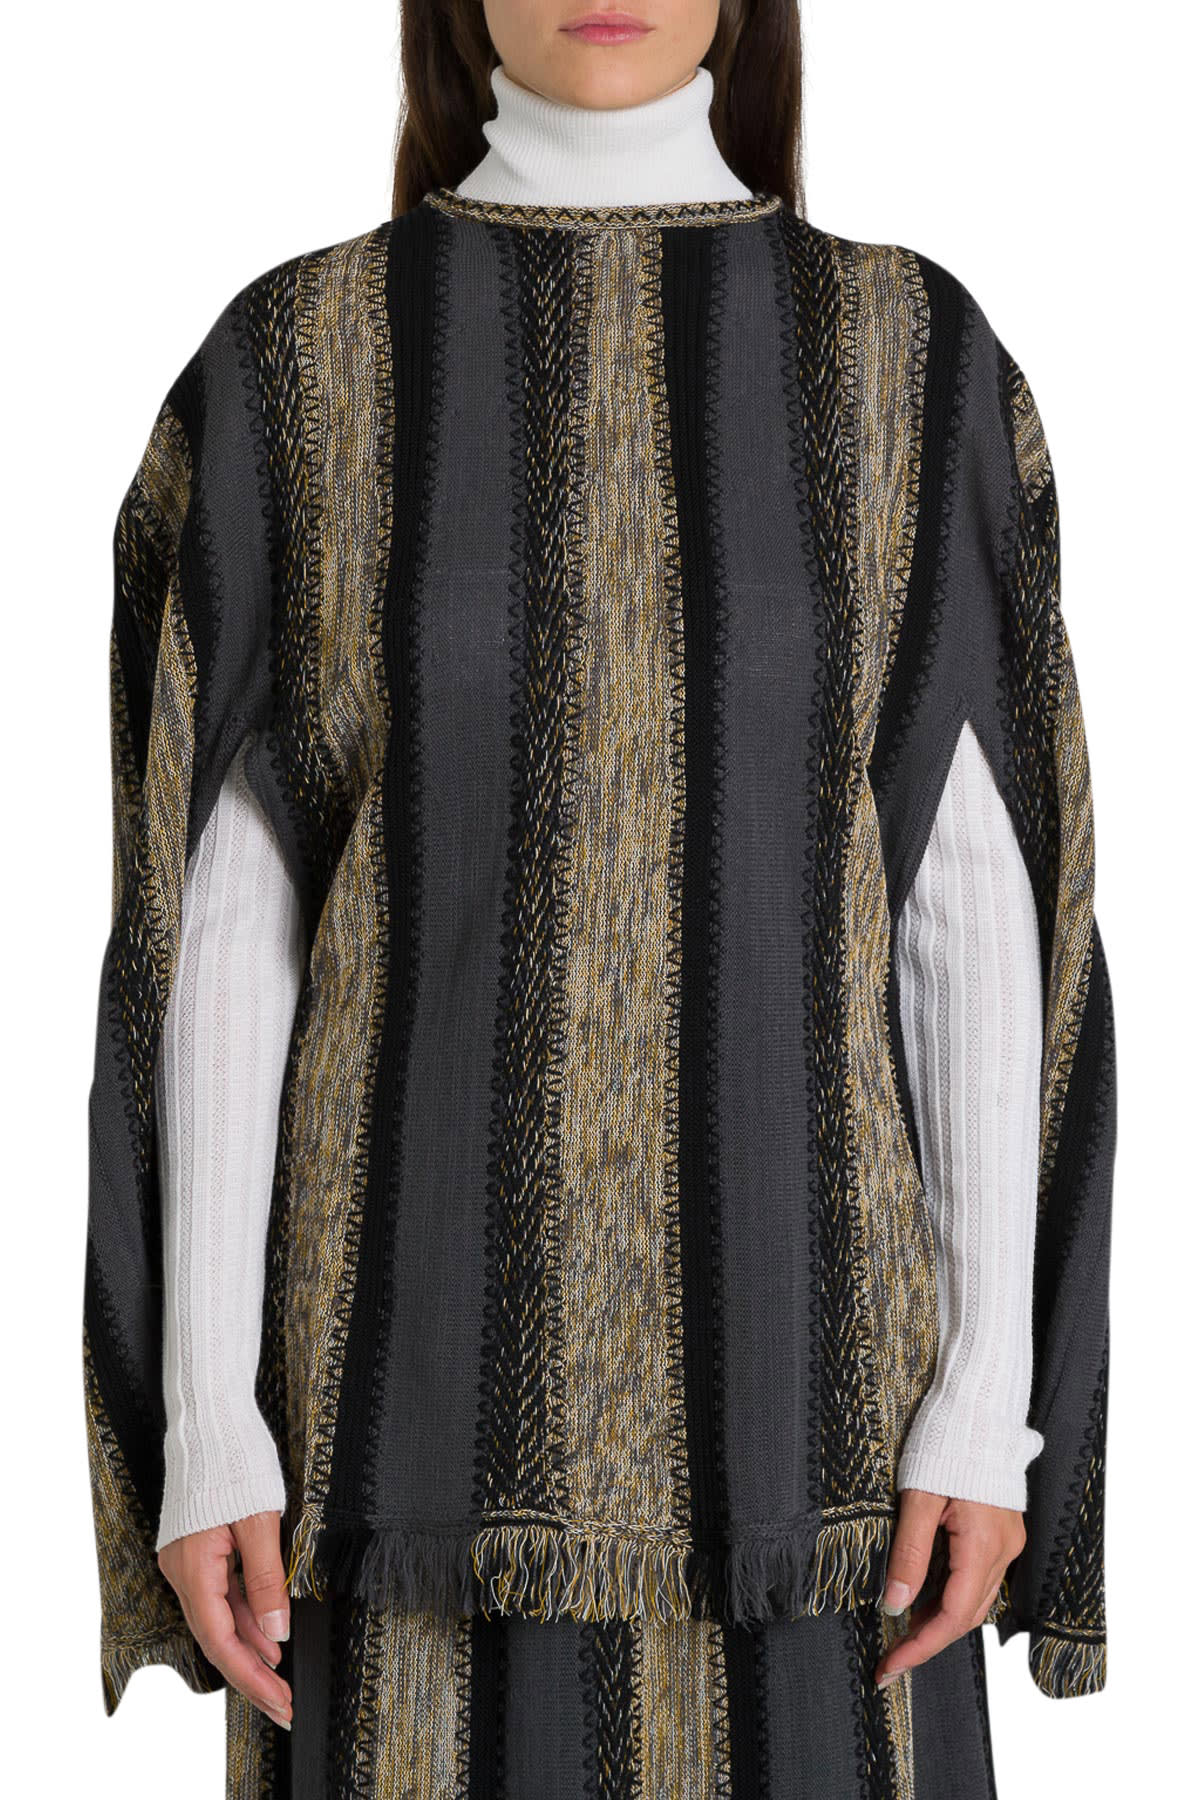 M Missoni Knitted Cape With Fringe To The Bottom